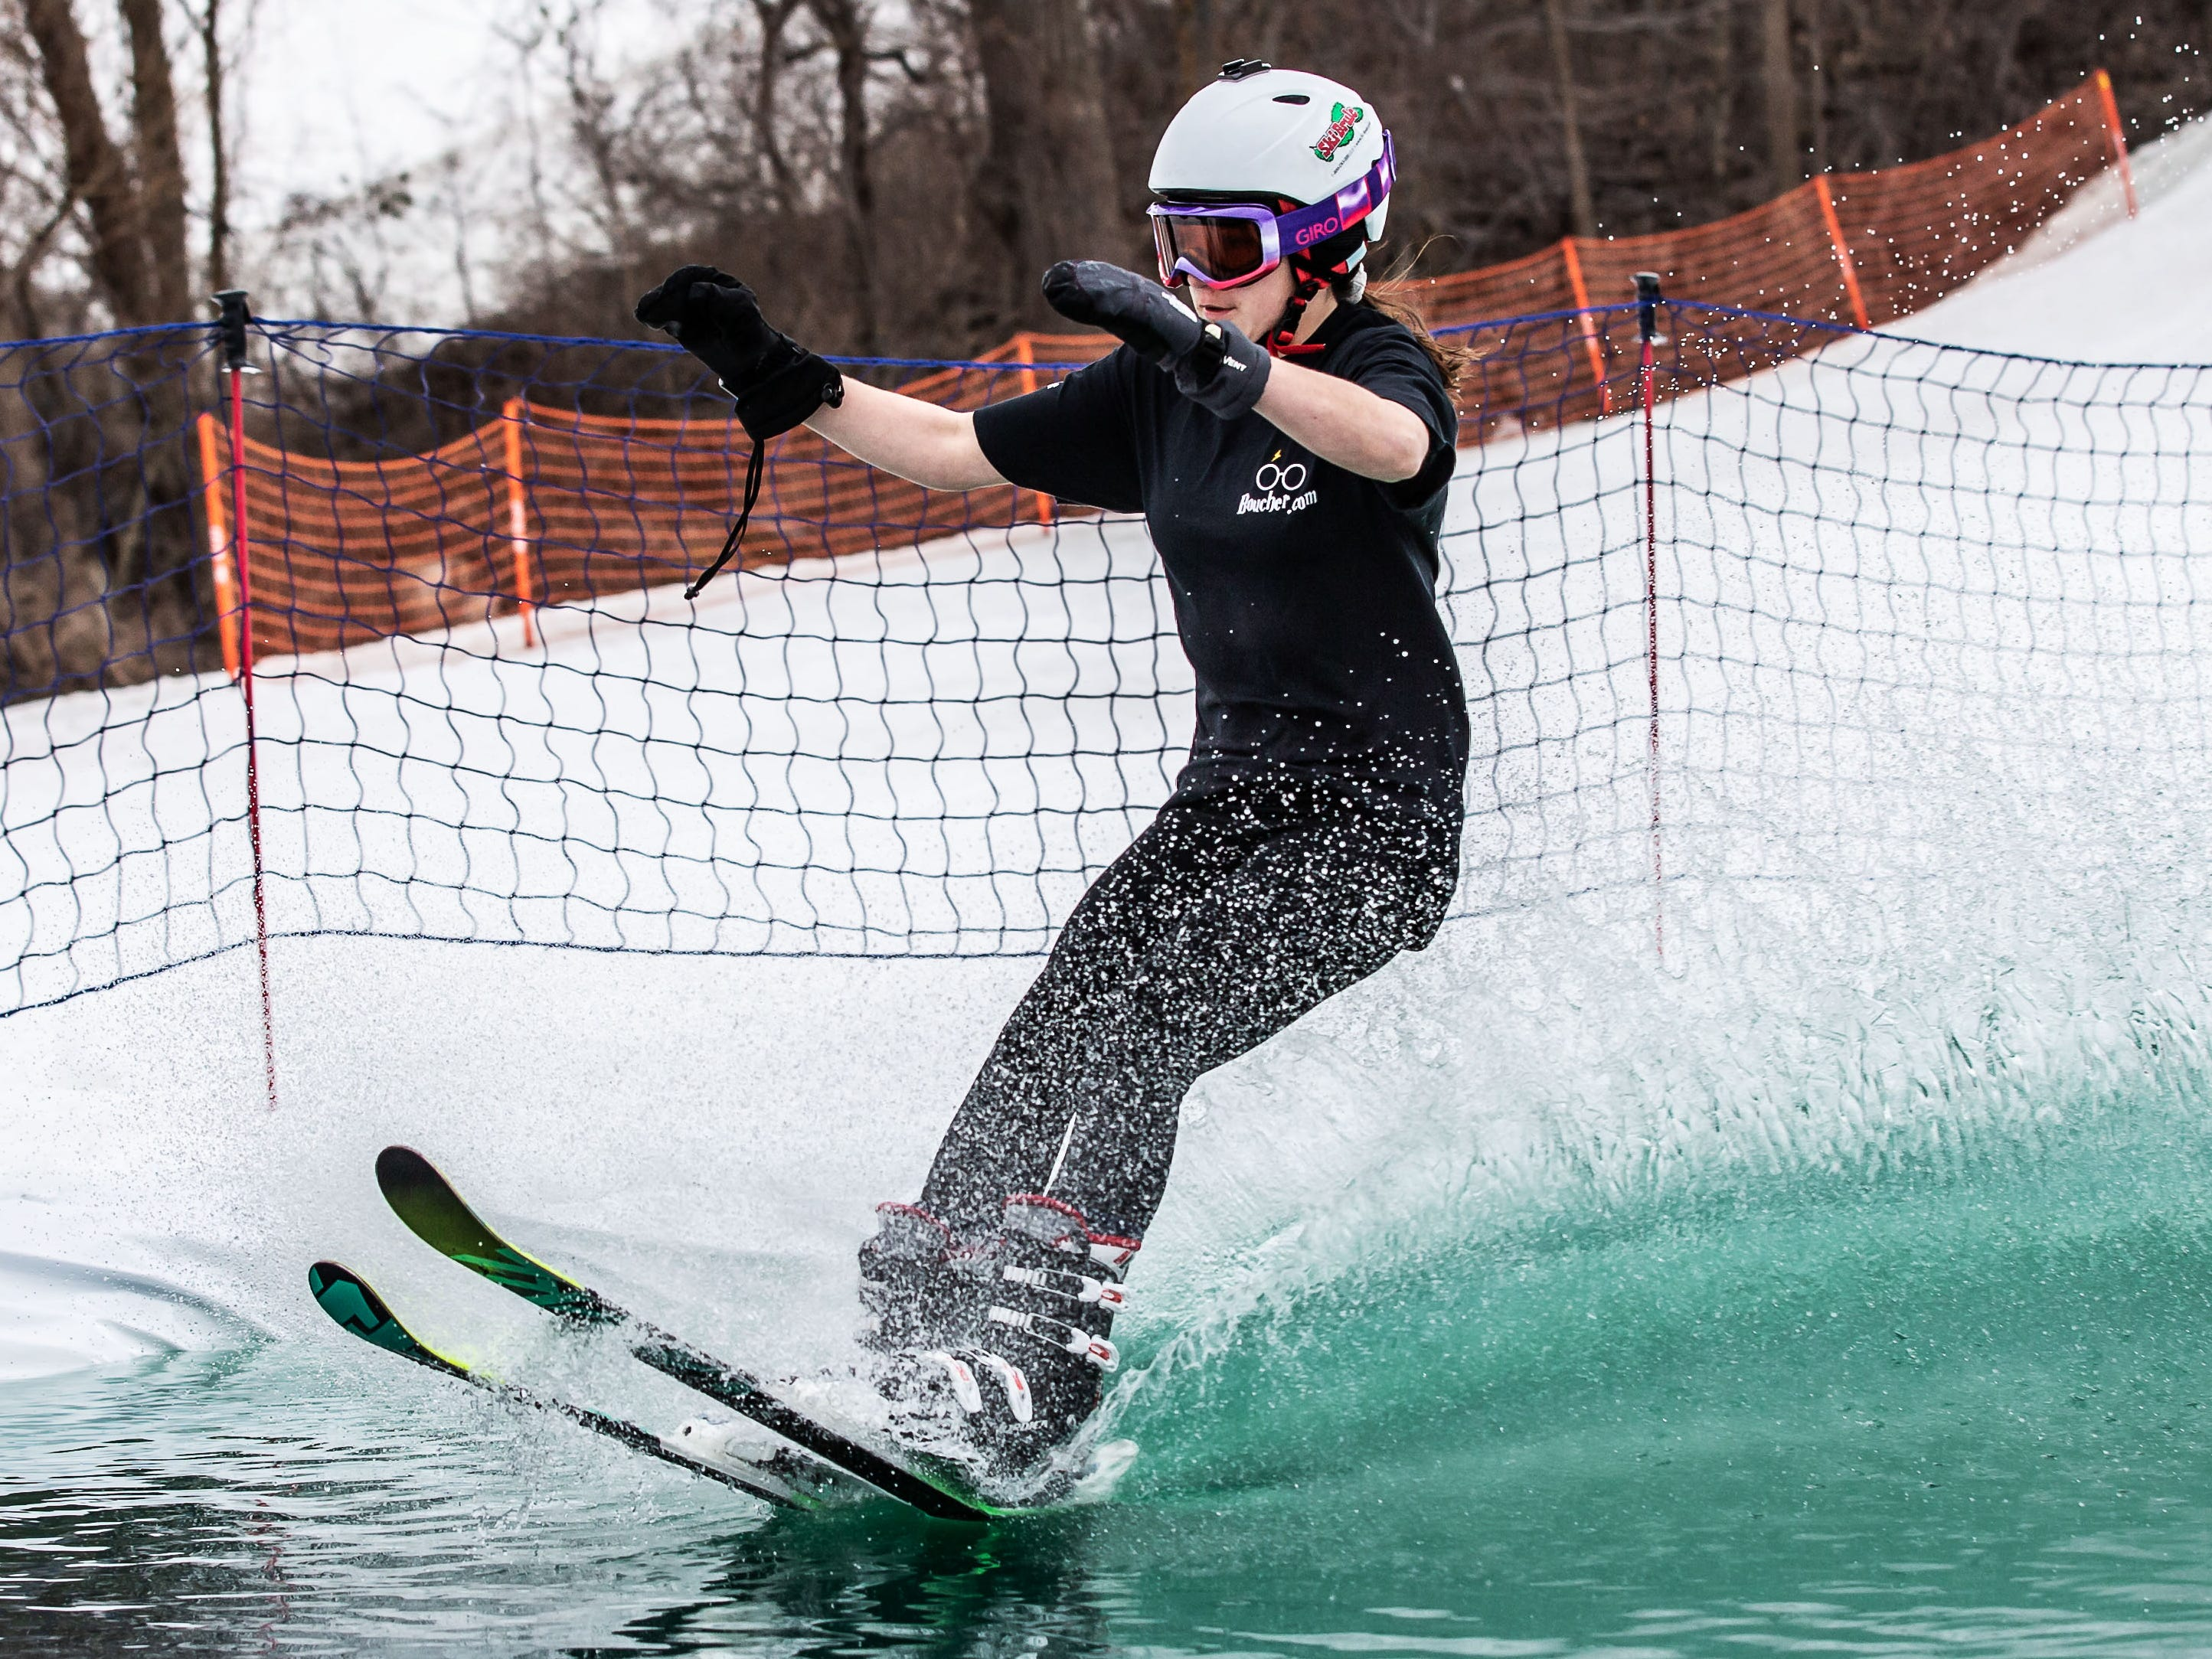 Brynn Jeide, 13, of Elm Grove takes a run during the 2nd annual Pond Skim at Ausblick Ski Hill in Sussex on Saturday, April 6, 2019. The pond skim is held on the last day of the season as club members celebrate another fun-filled year on the slopes.